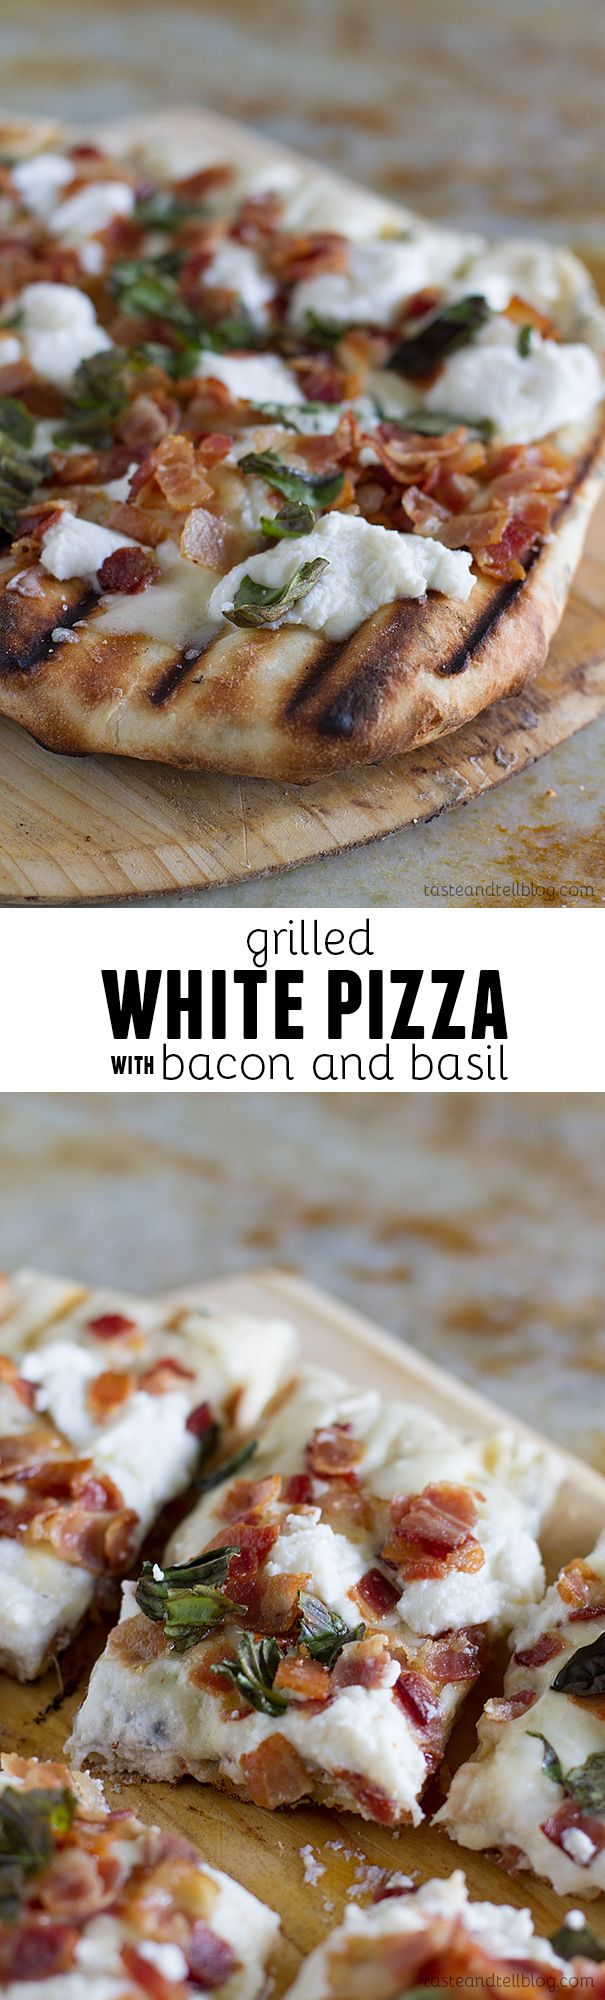 Grilled White Pizza with Bacon and Basil make with GF crust